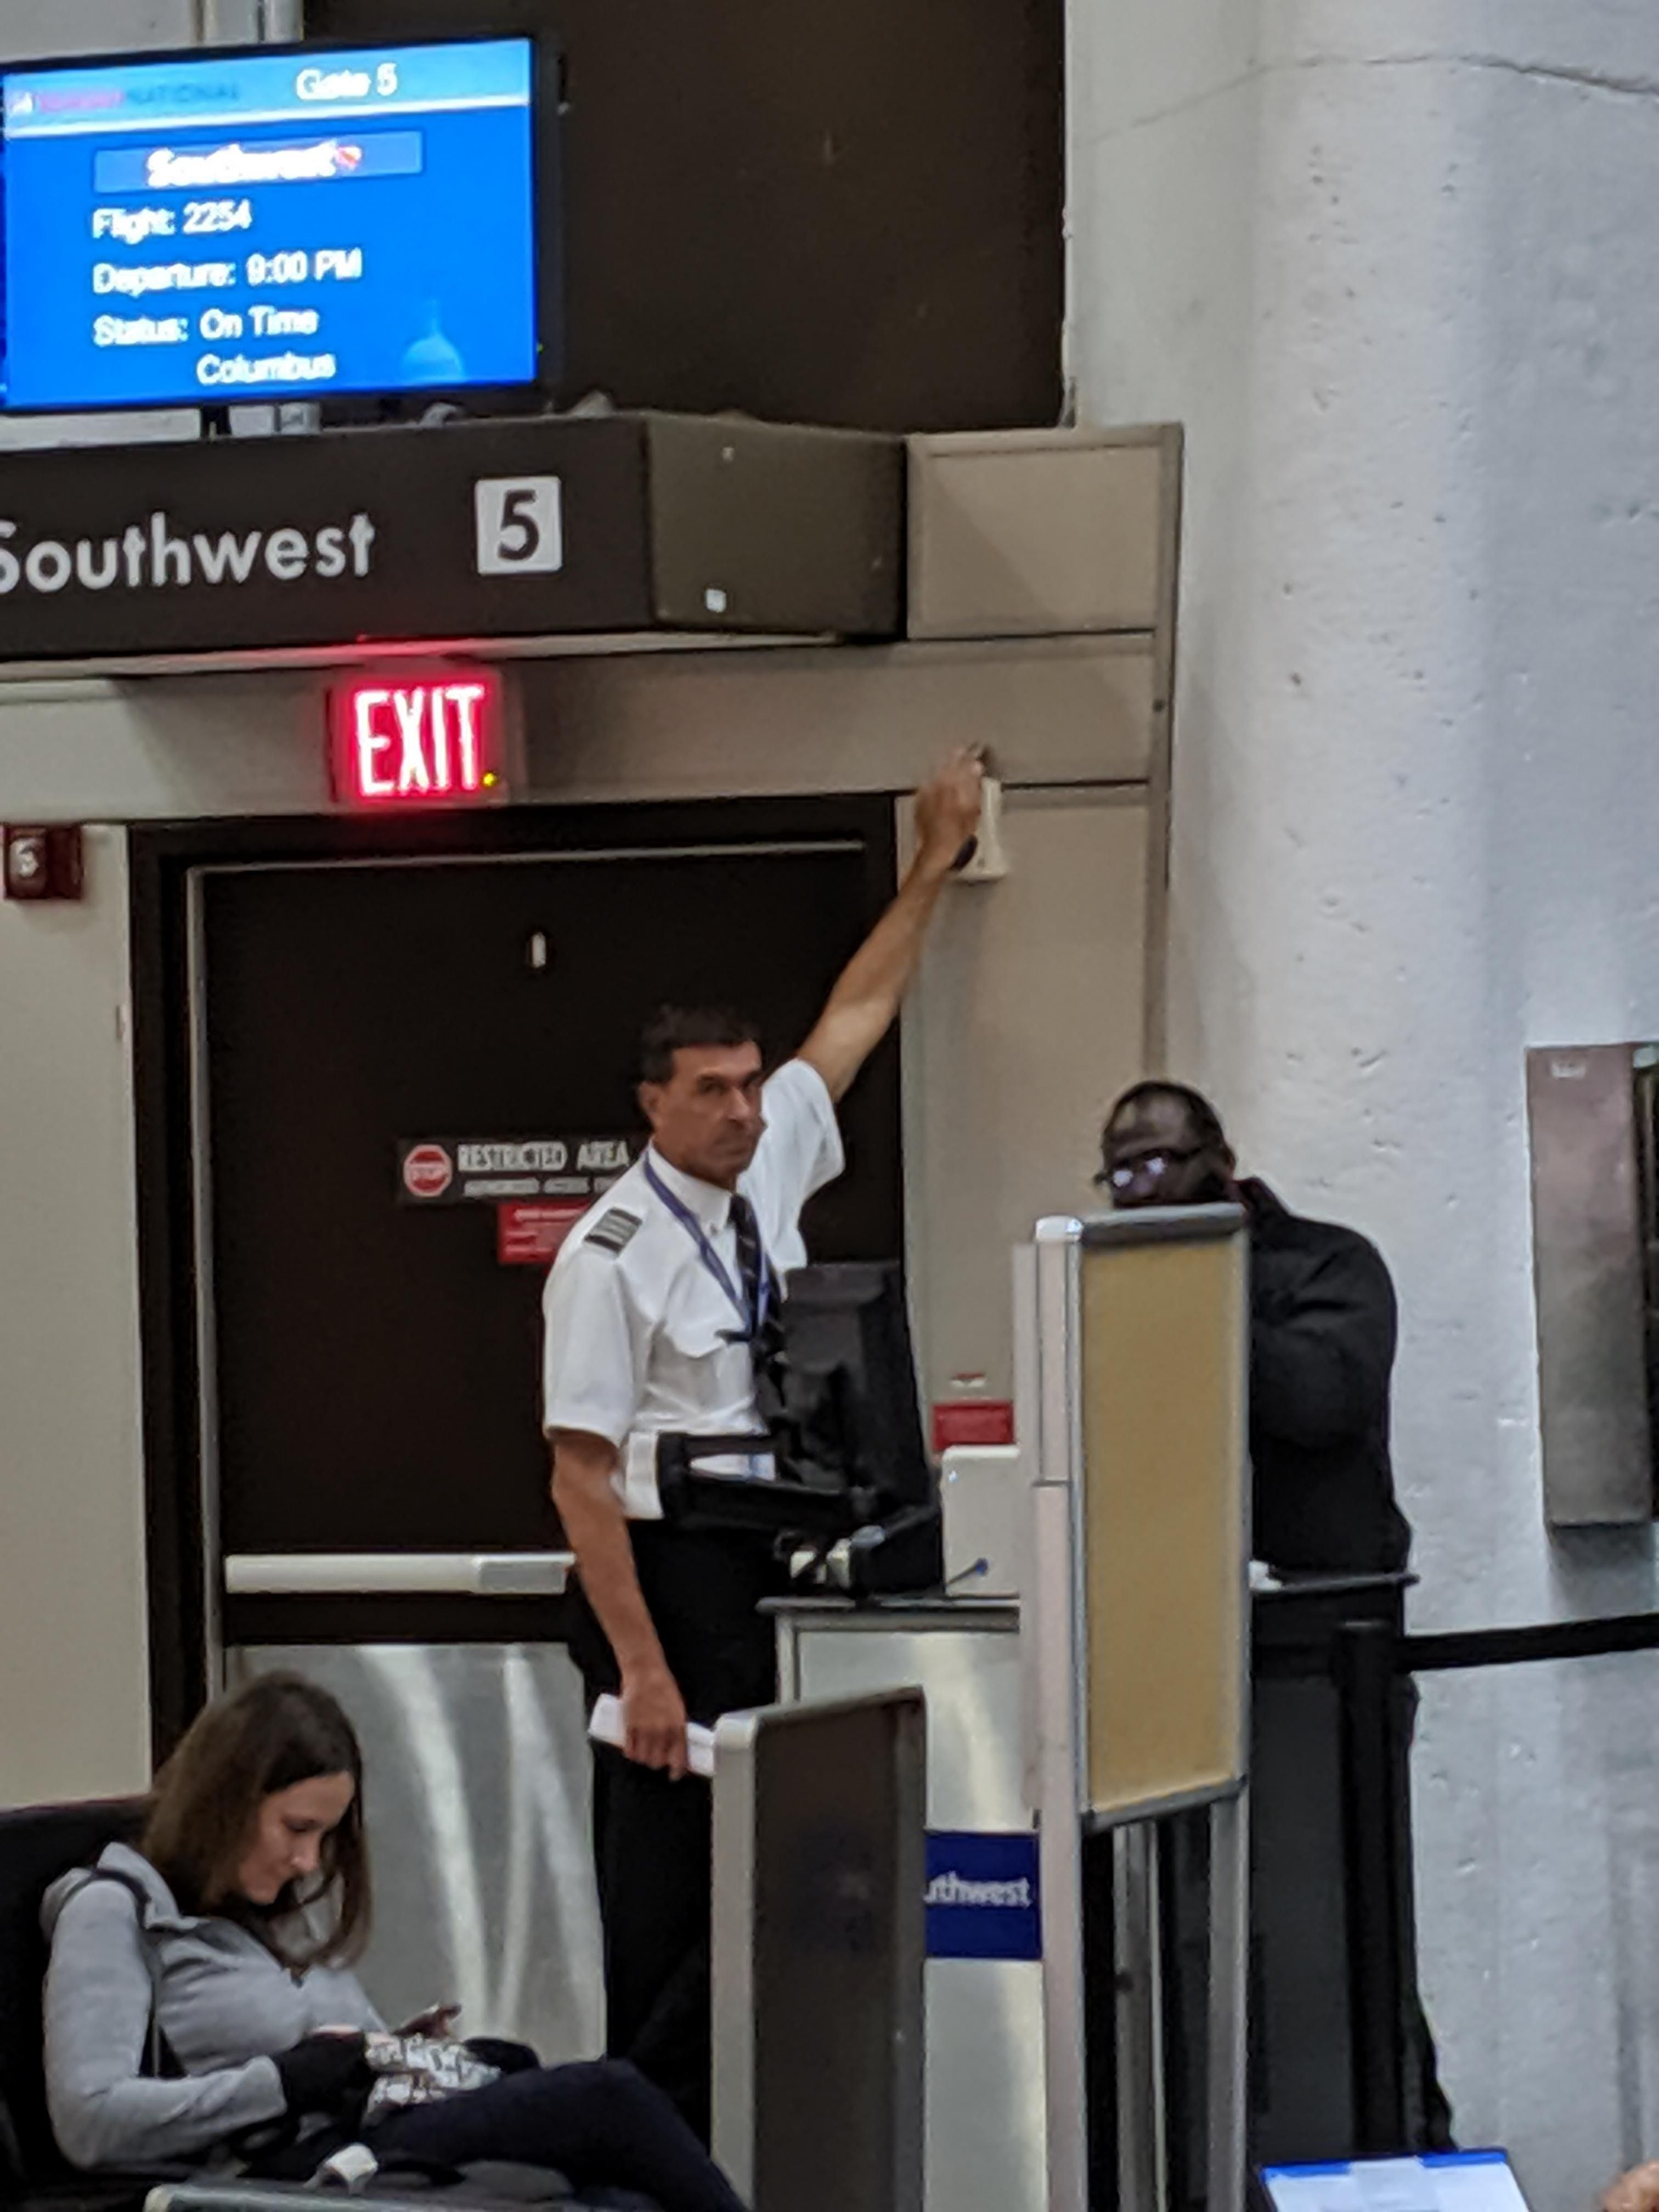 Pilot set off a door alarm, but security needs to come check it out. He's been covering the siren for 5 minutes.